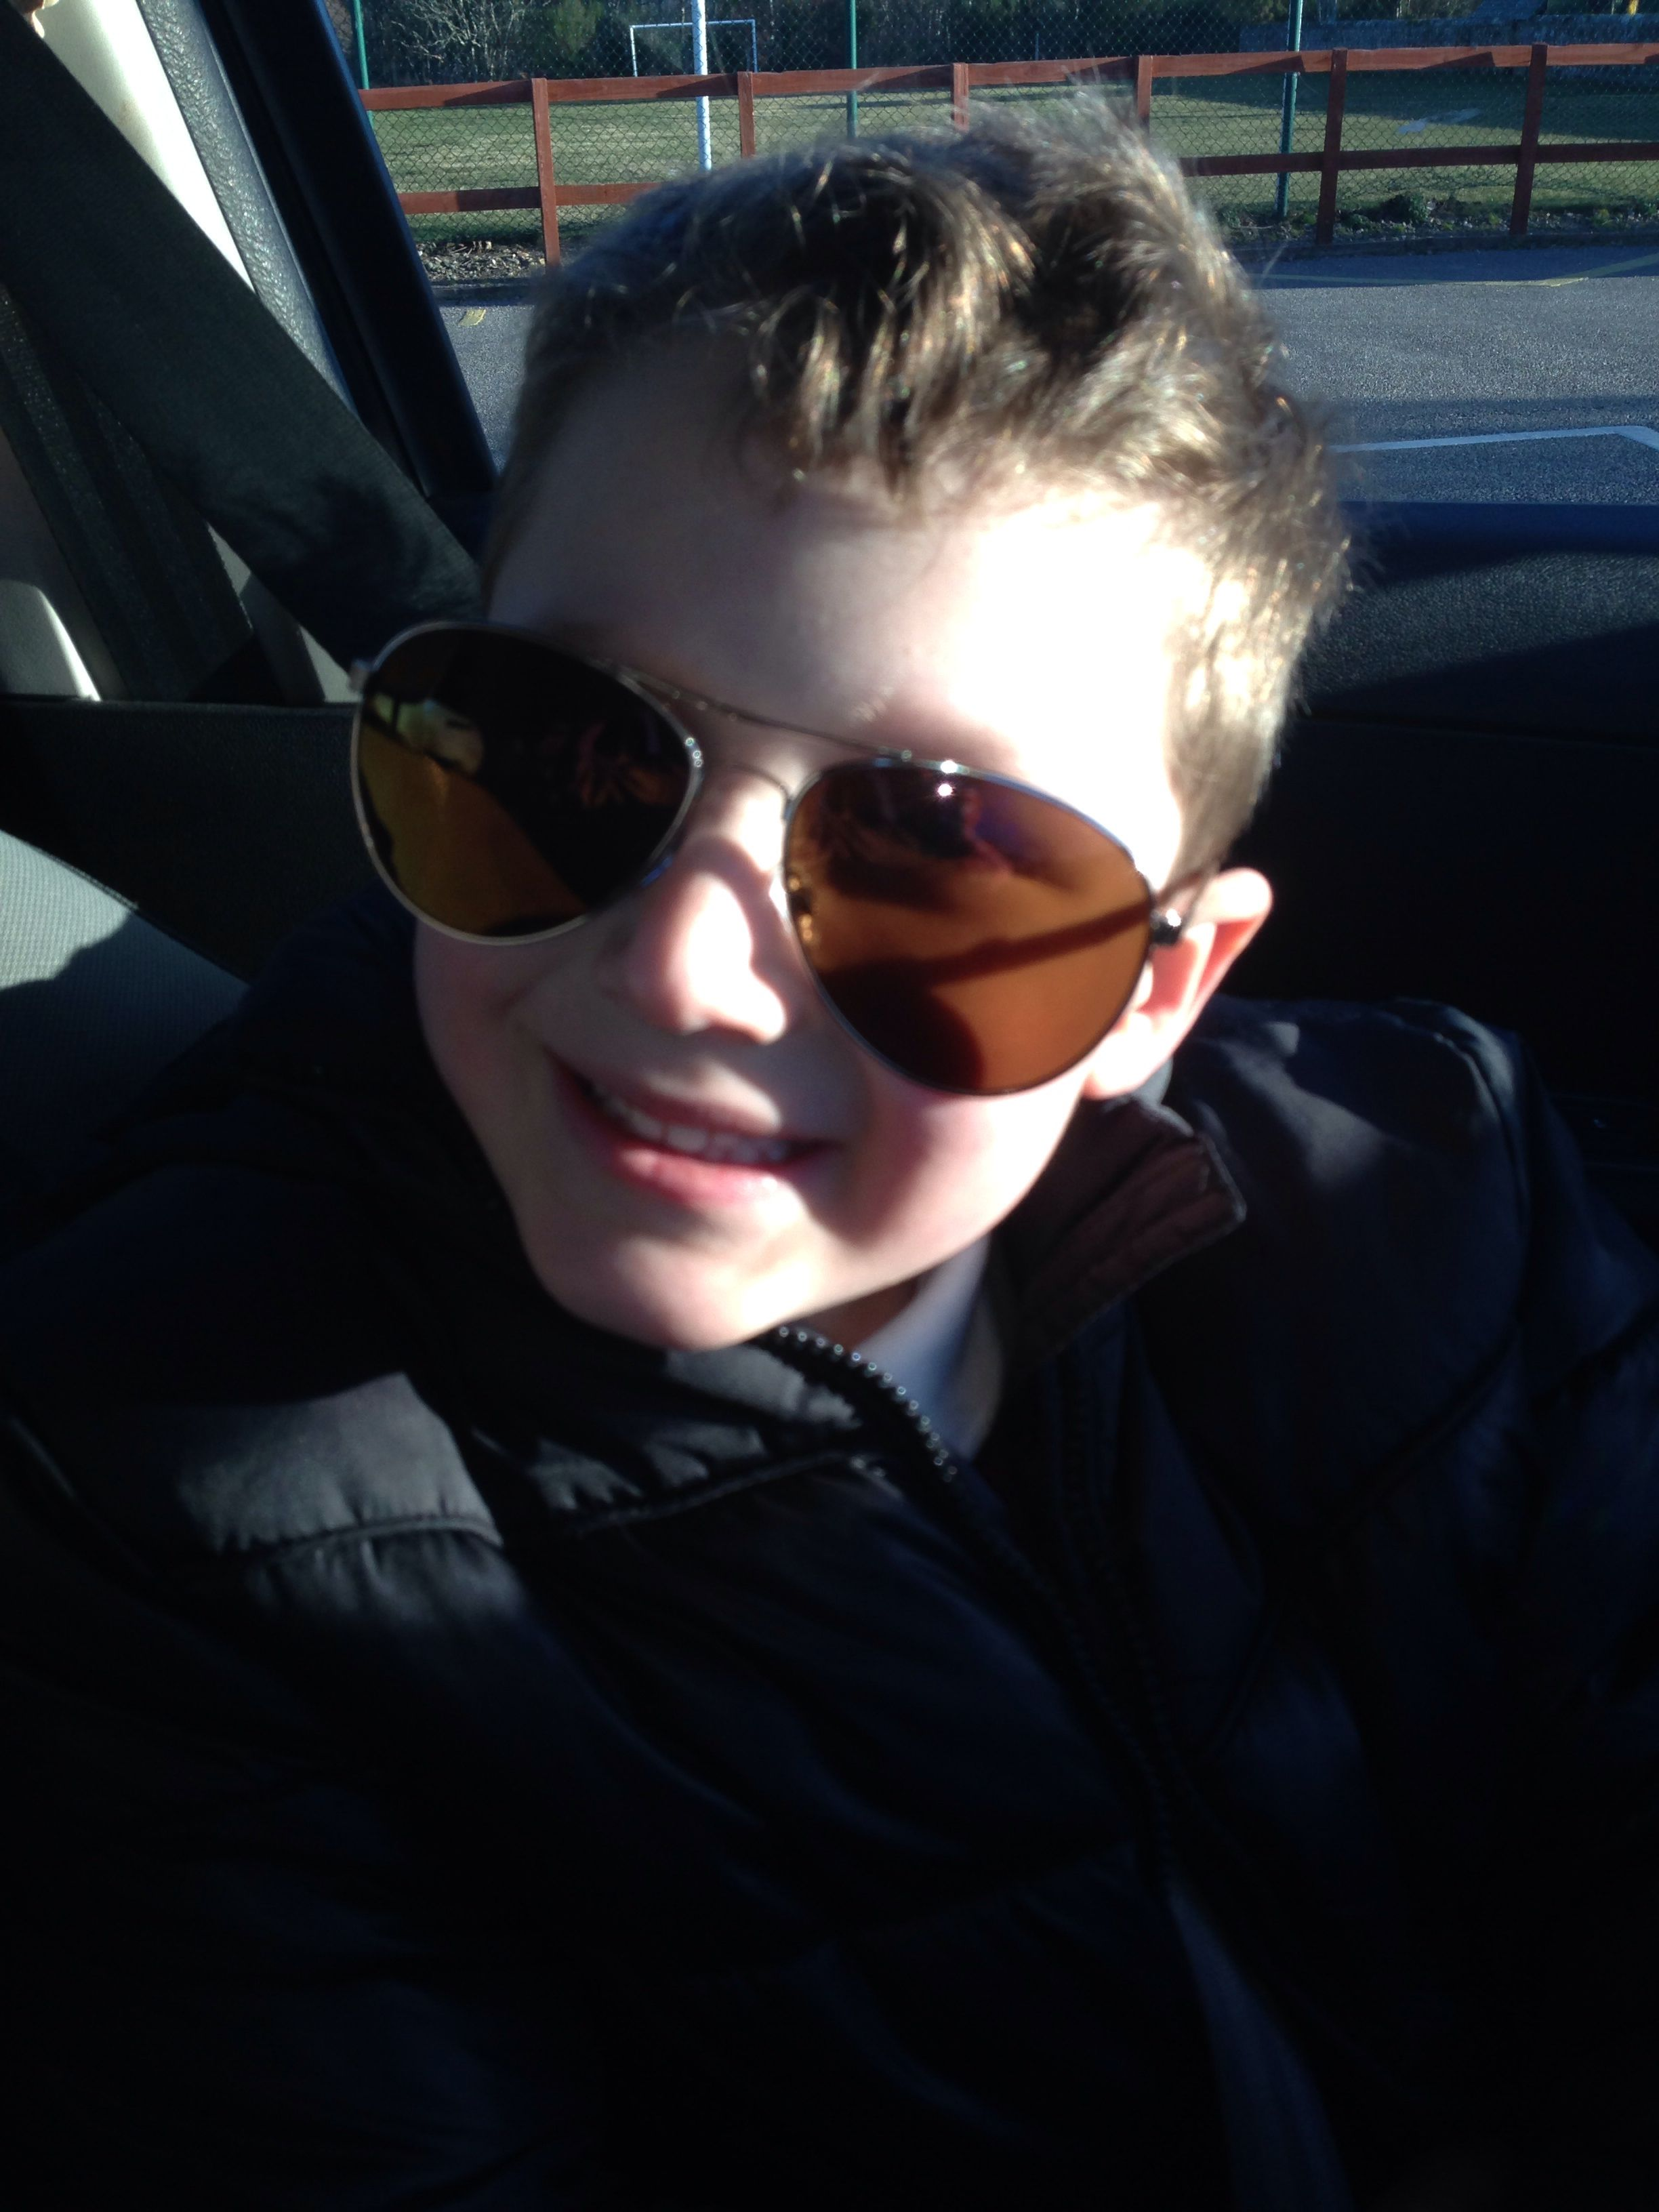 The cool kid